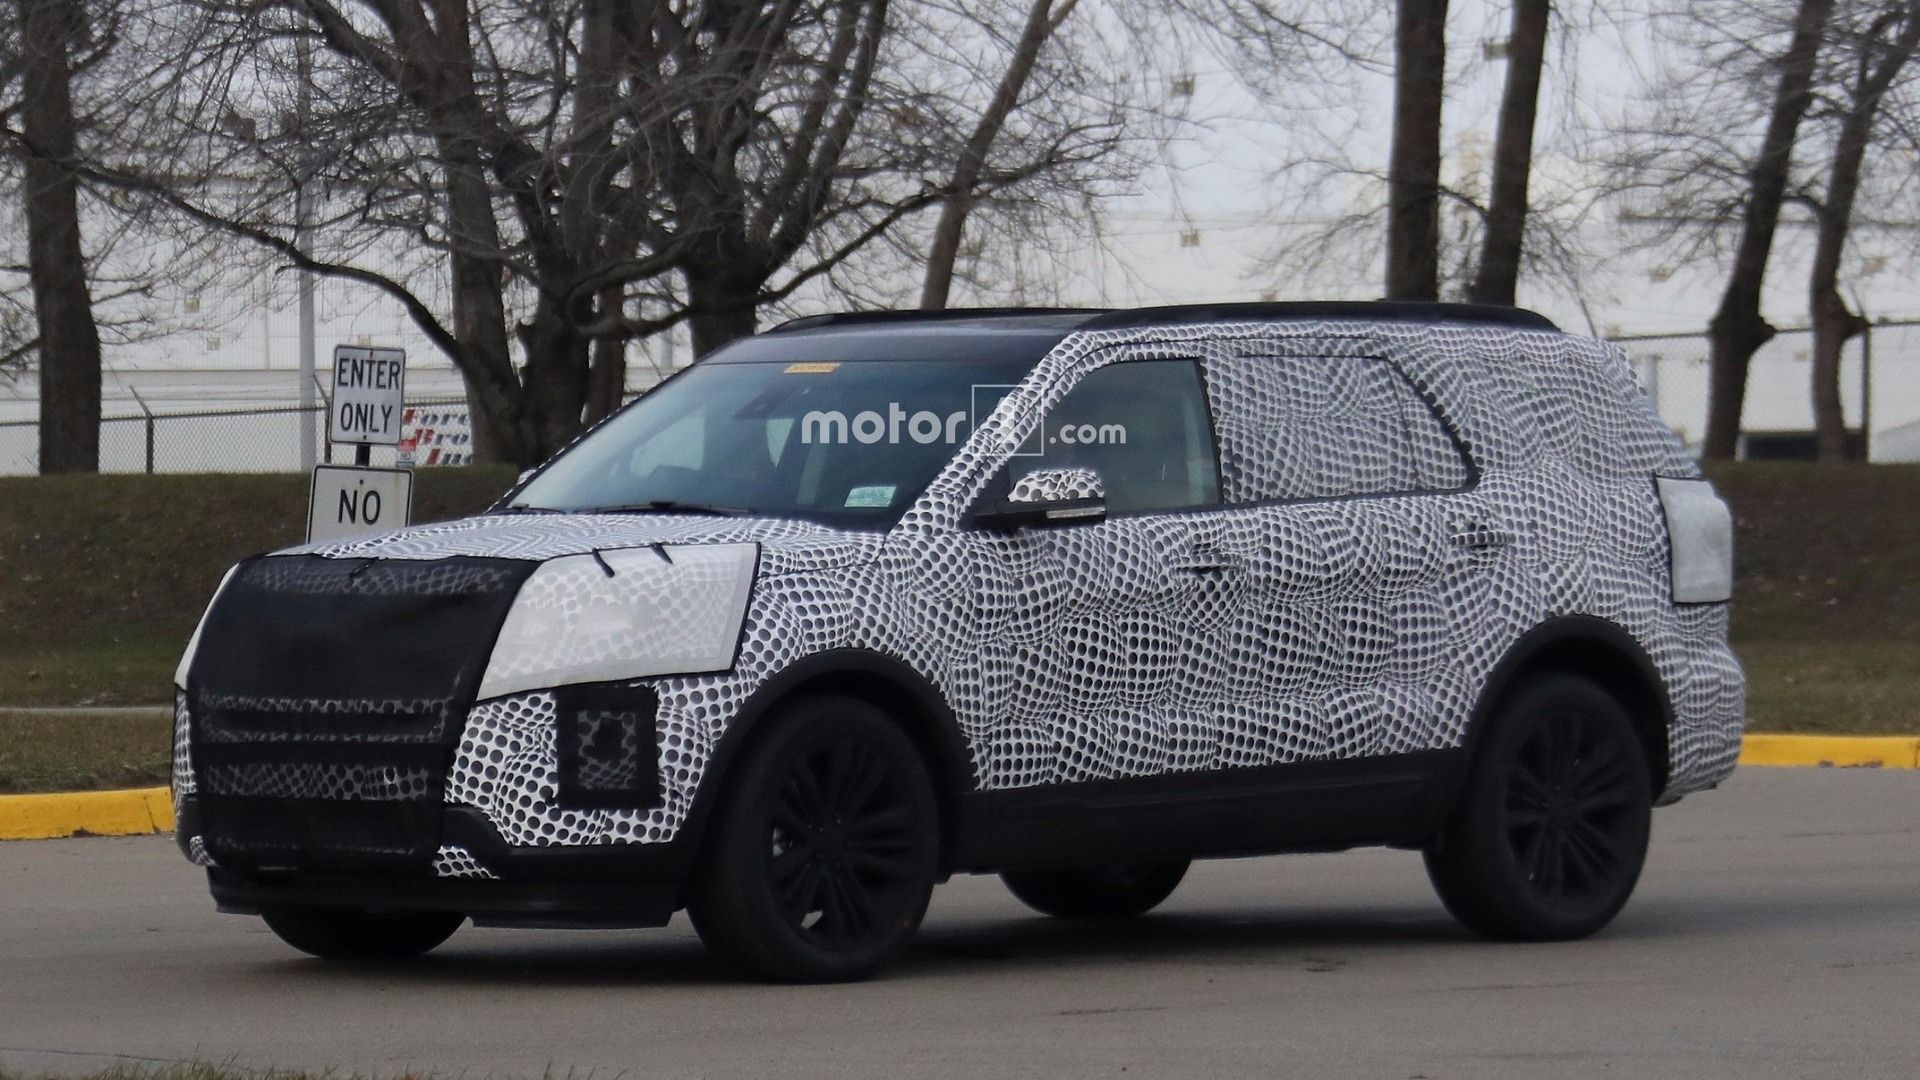 2019 Ford Explorer Will Have The Chance New Interior 2019 Ford Explorer Ford Explorer Ford Explorer Sport